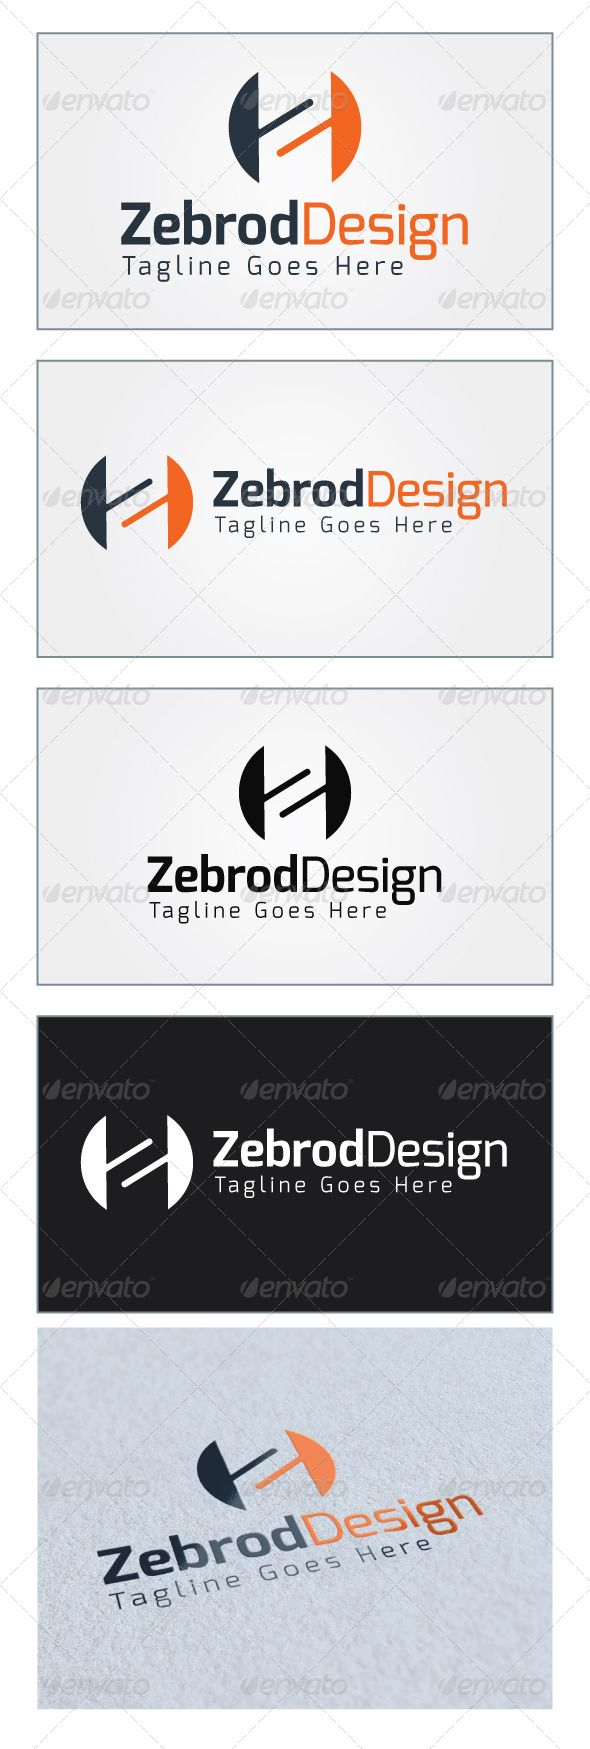 Zebrod Design Logo Template GraphicRiver Re sizable